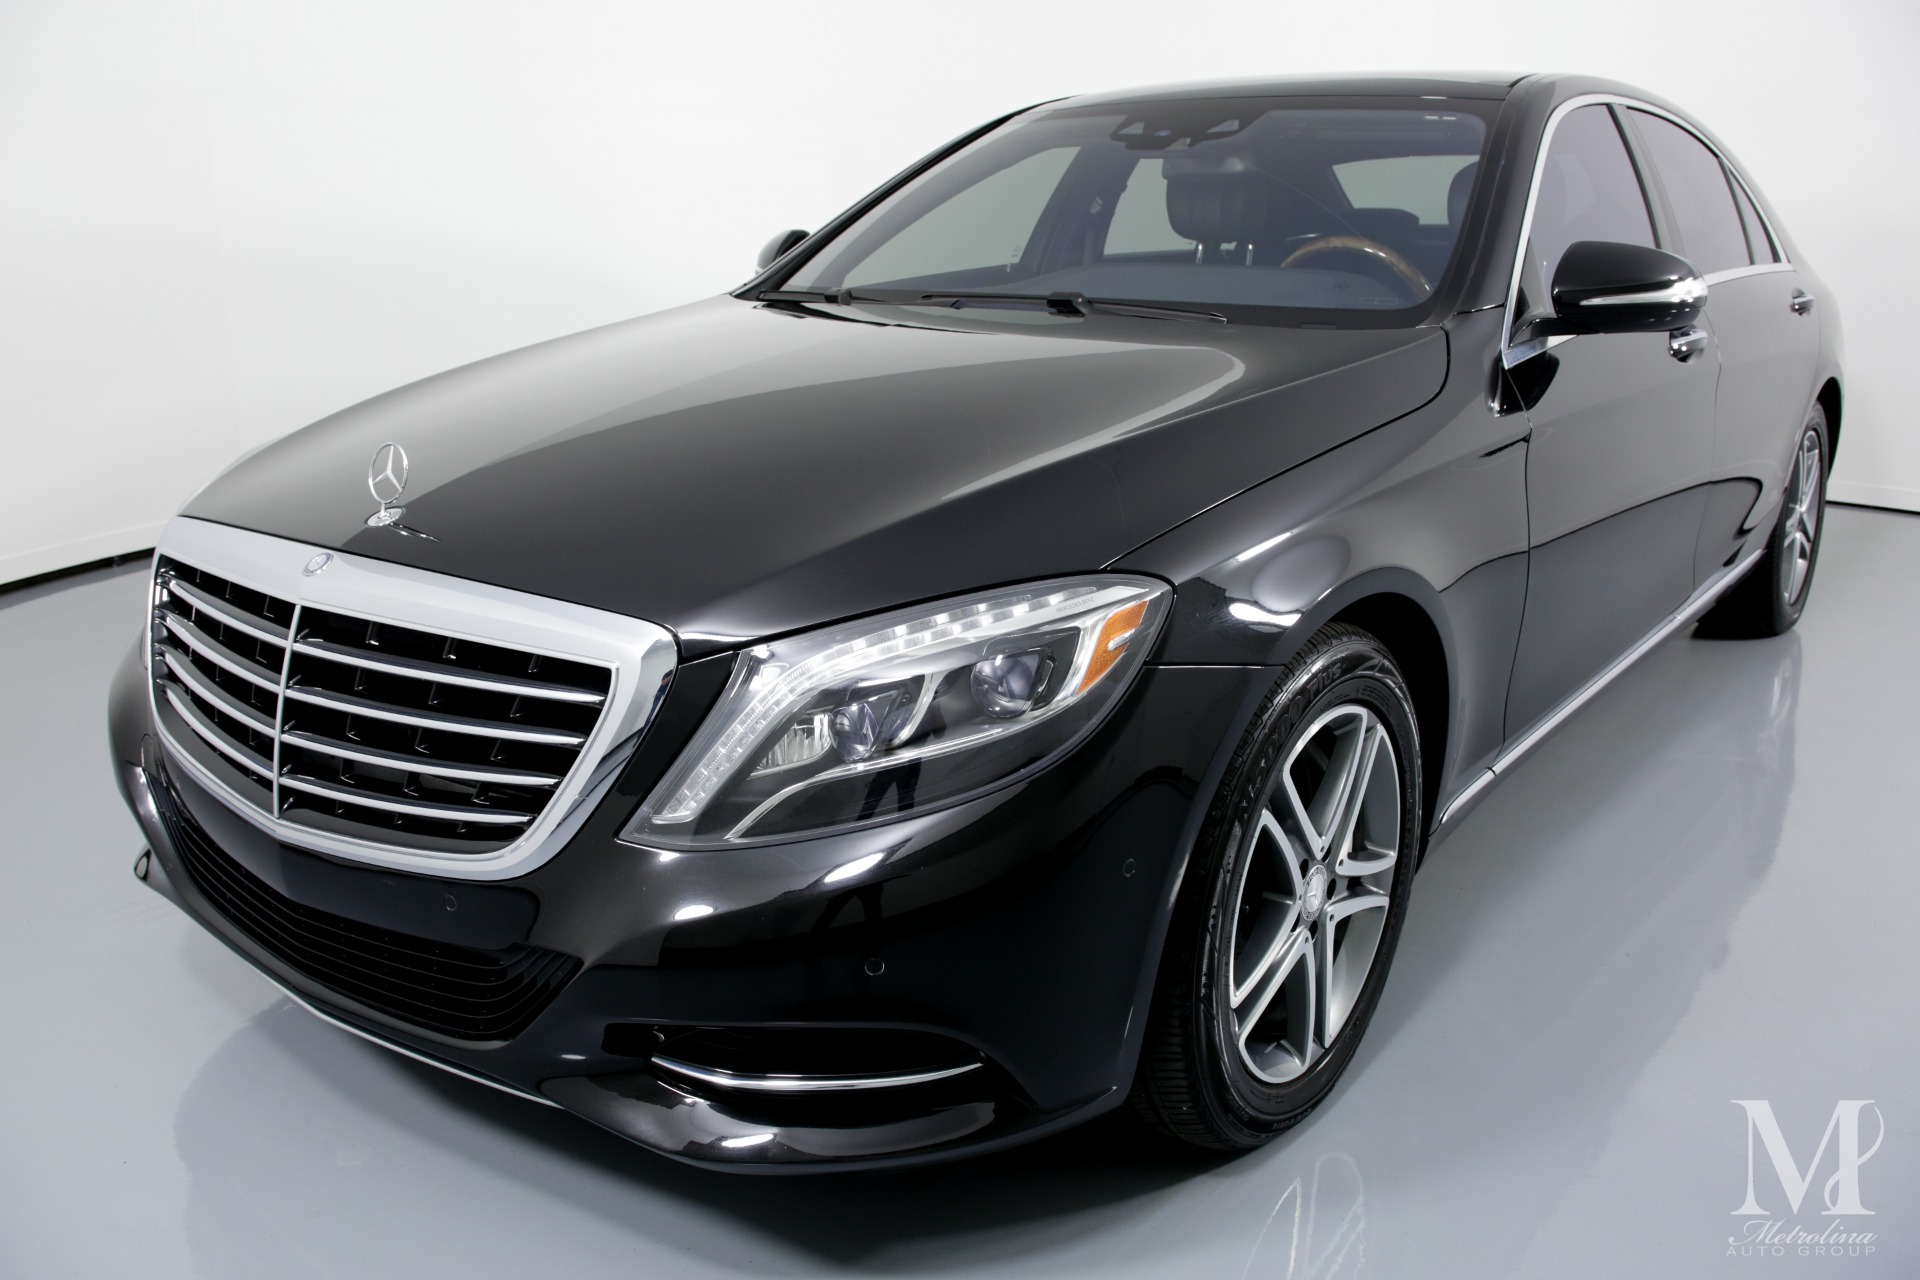 Used 2016 Mercedes-Benz S-Class S 550 4dr Sedan for sale $44,996 at Metrolina Auto Group in Charlotte NC 28217 - 4